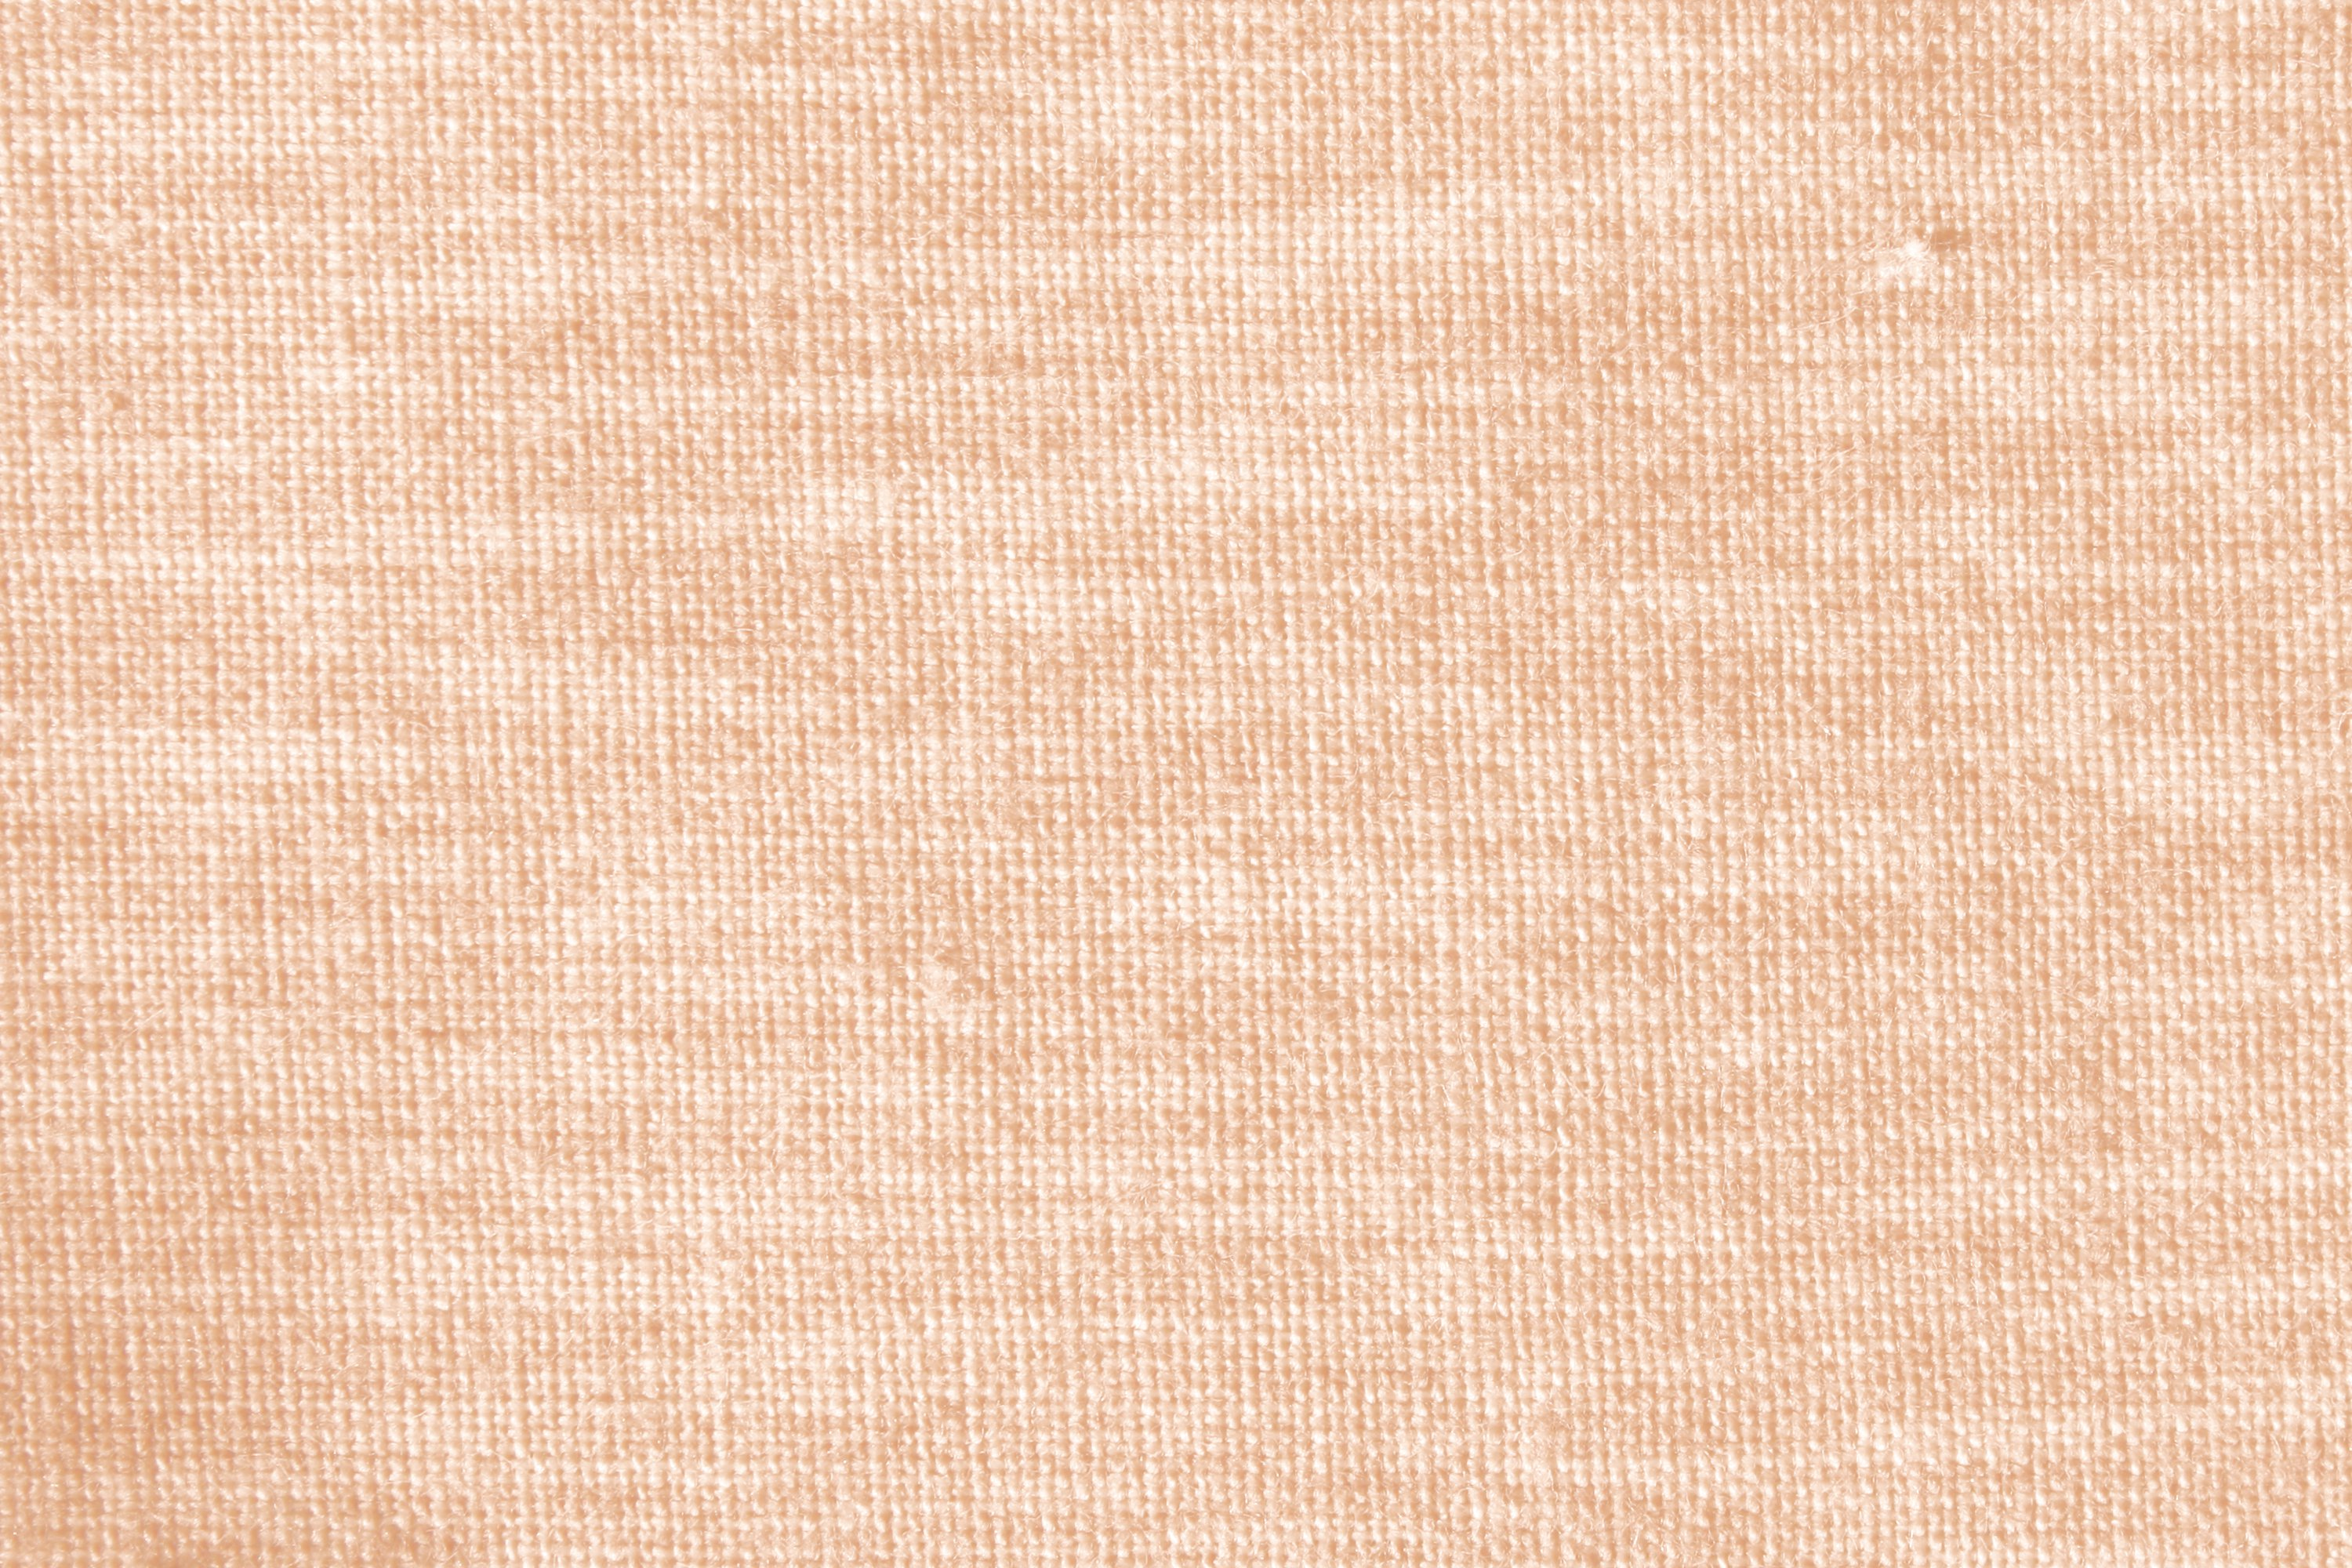 Peach or Light Orange Woven Fabric Close Up Texture Picture.